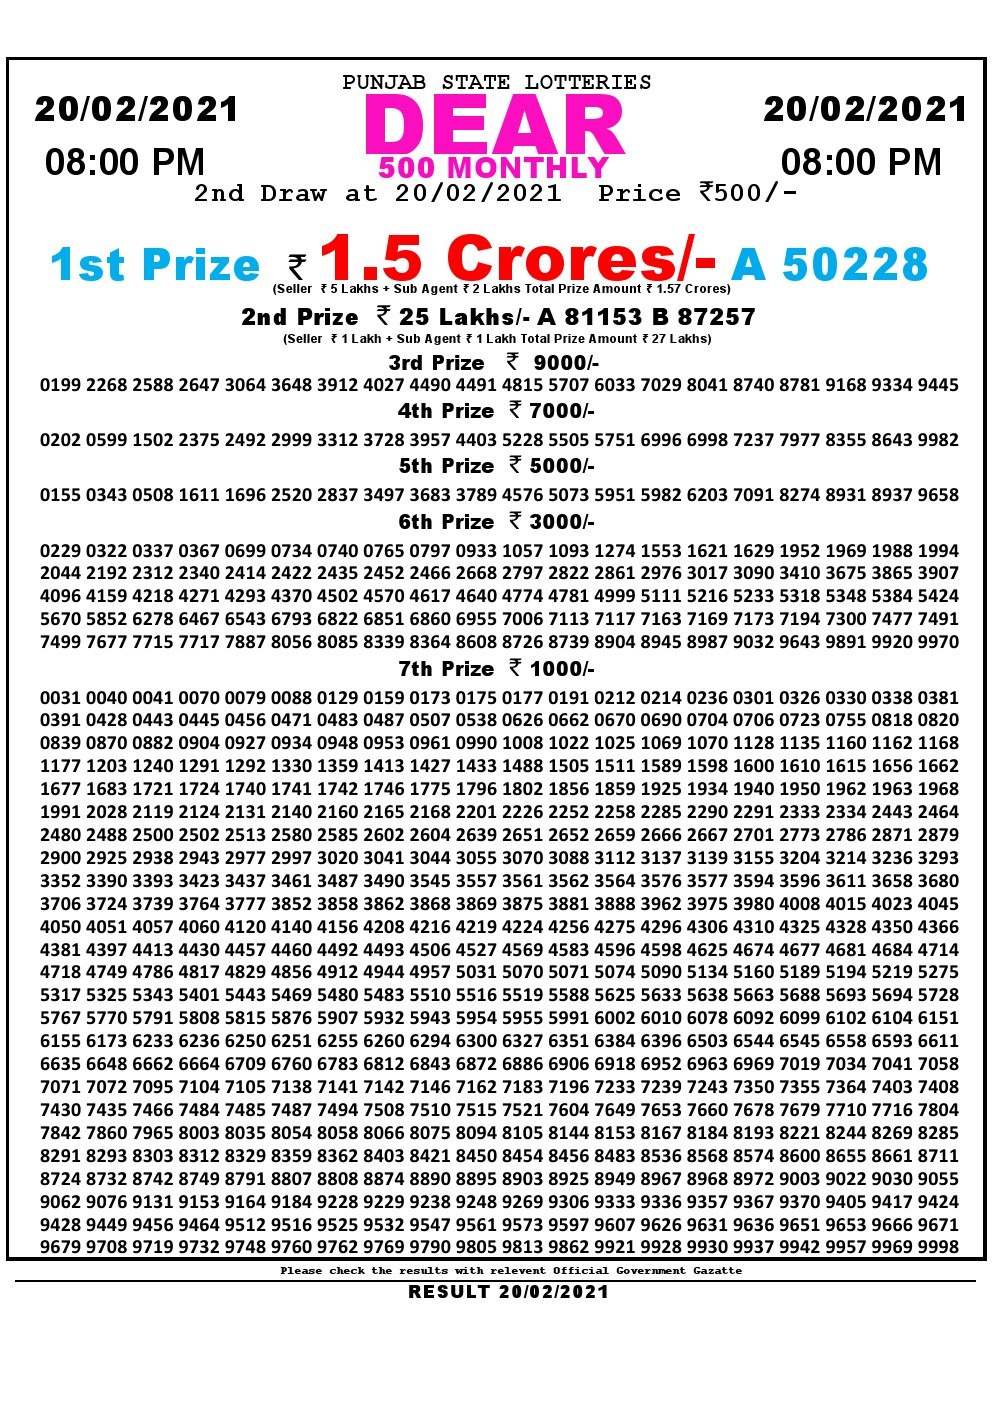 Punjab State Lottery Result Today 22/02/2021 Dear 500 Monthly 8pm lOTTERY